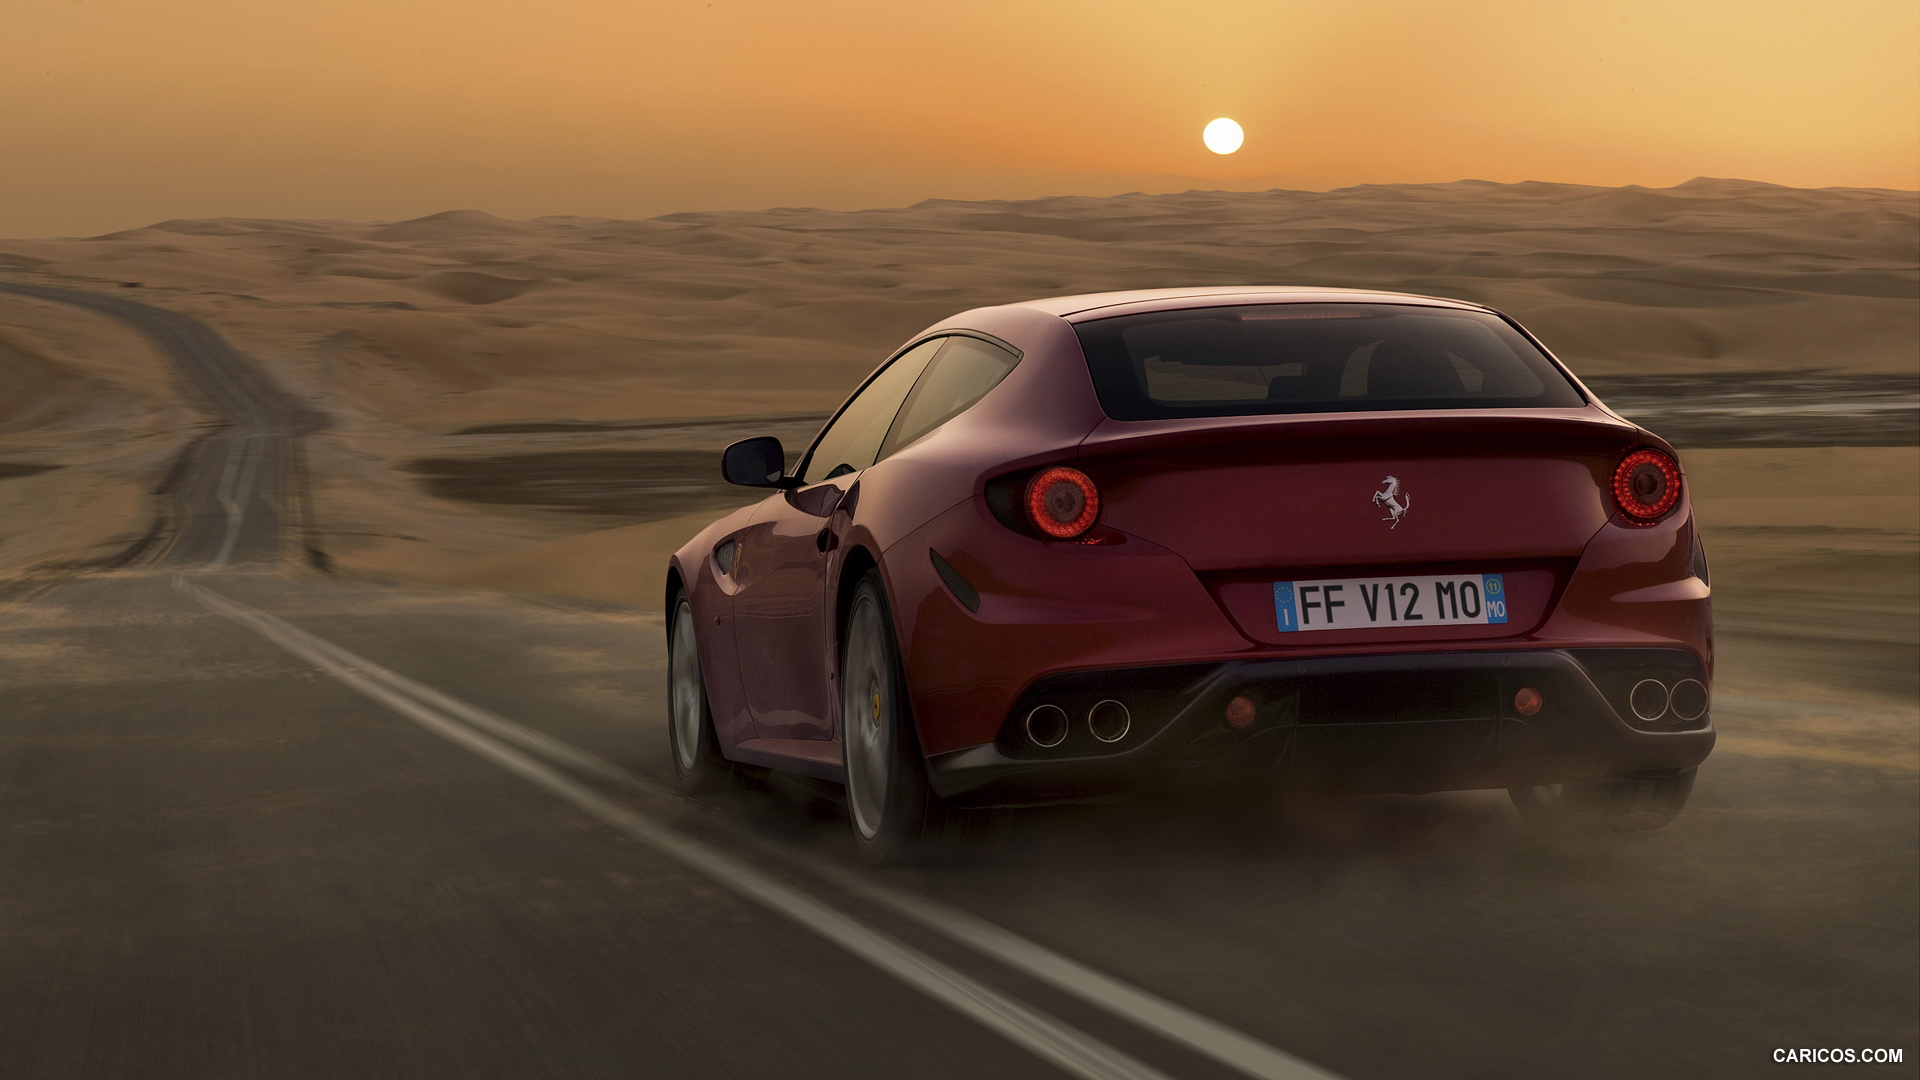 1920x1080 - Ferrari FF Wallpapers 11